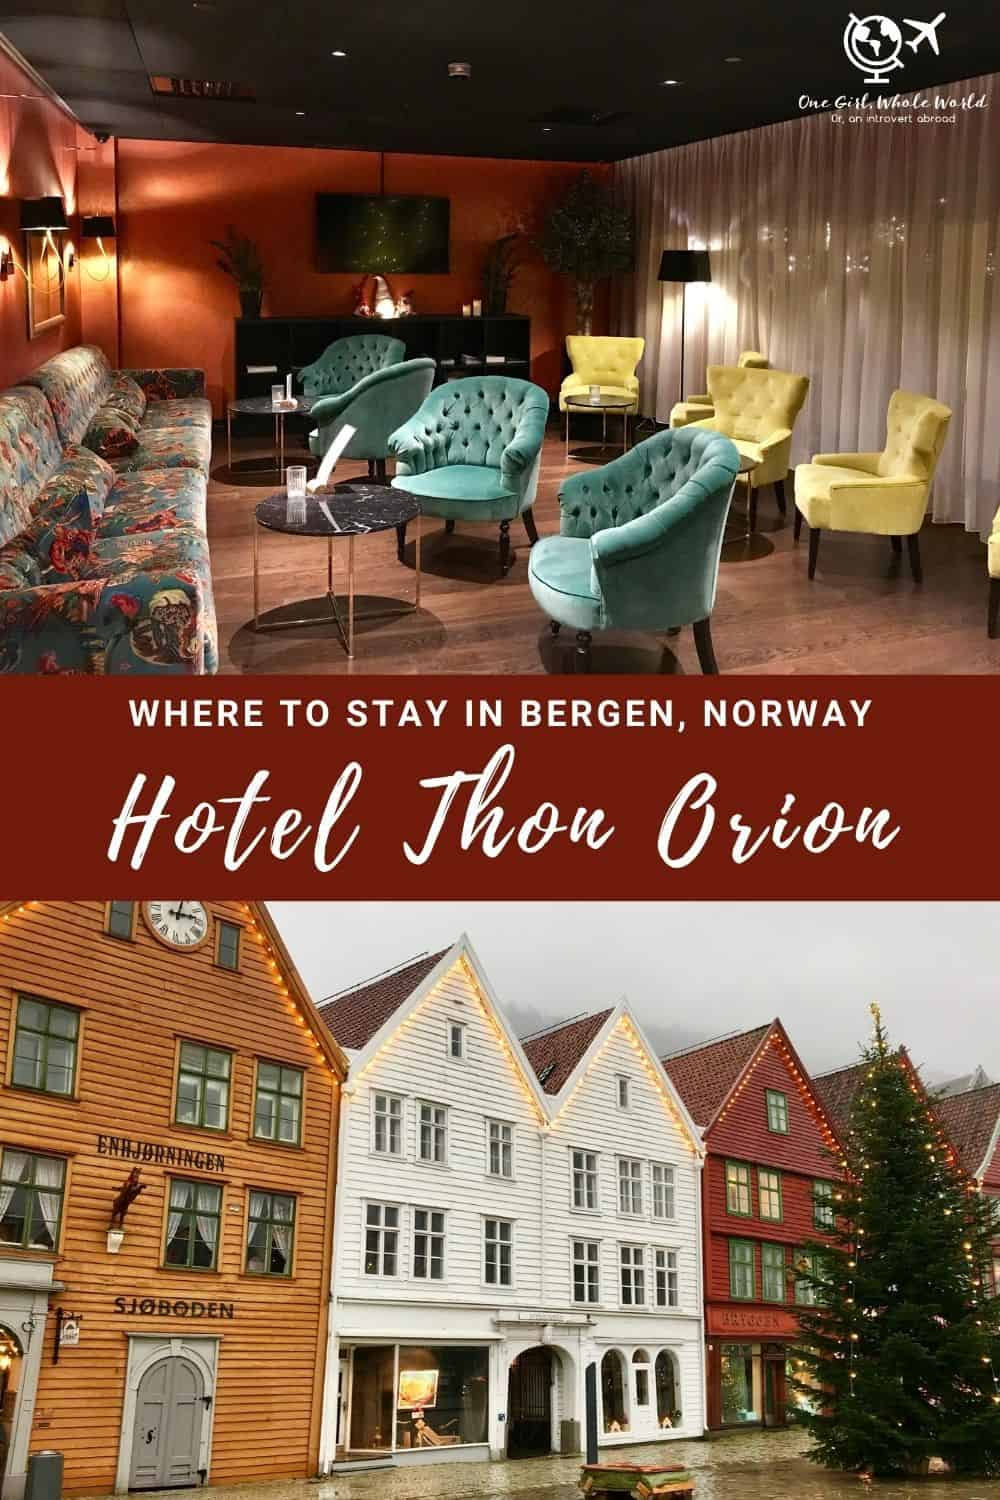 Where to Stay in Bergen, Norway: Hotel Thon Orion | A review of the Hotel Thon Orion Hotel in Bergen, Norway...a cozy and charming hotel in Bryggen old town, a perfect place to stay while visiting Bergen. Safe, clean, great service, and very affordable, with views of the waterfront. Tips for visiting Bergen, Bergen trip planning tips, Norway travel tips | One Girl, Whole World